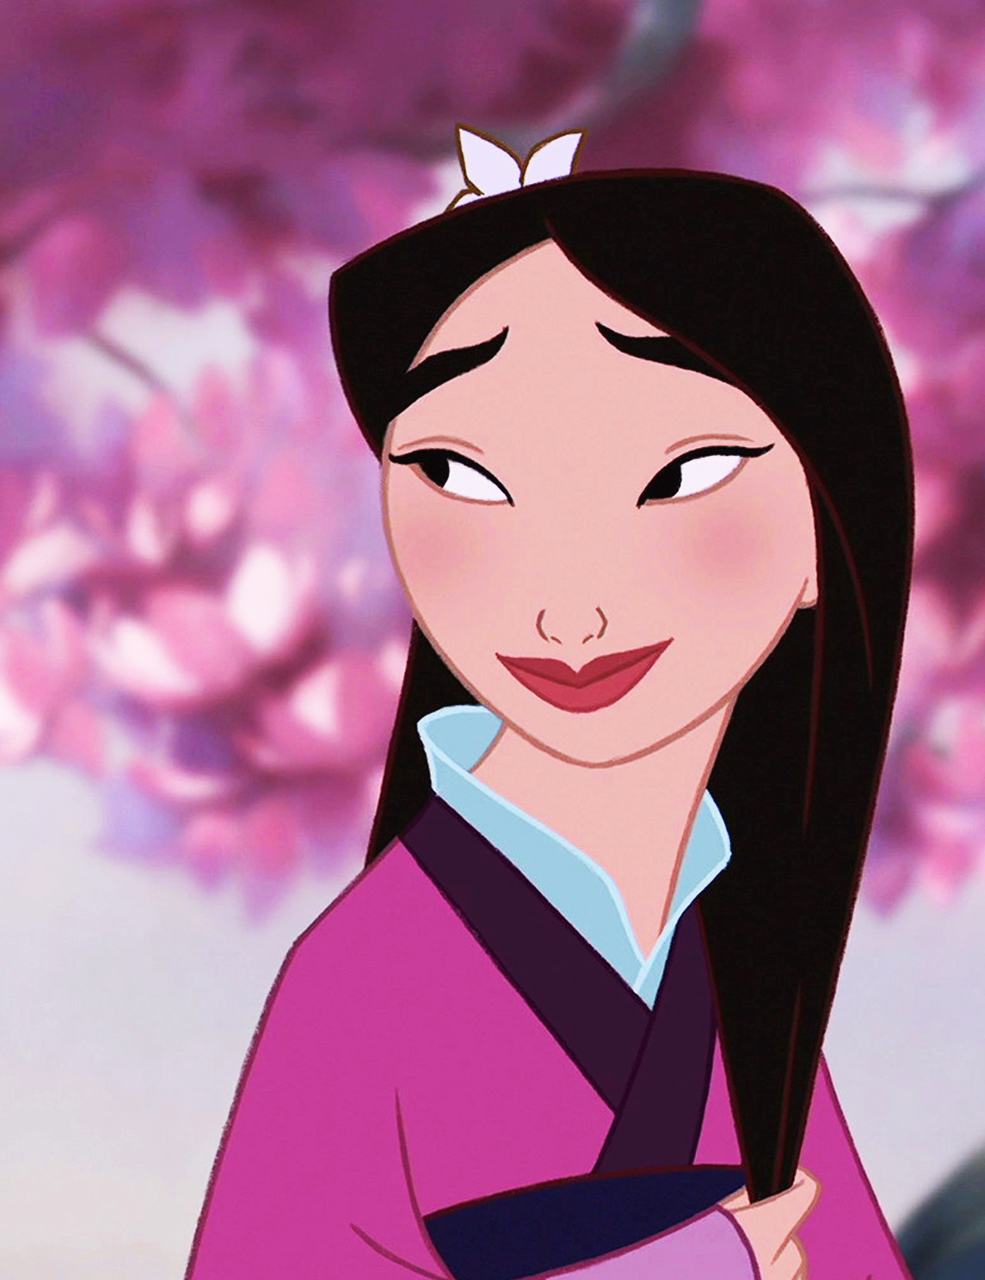 China Chinese Cute Disney Disney Princess Animated Gif